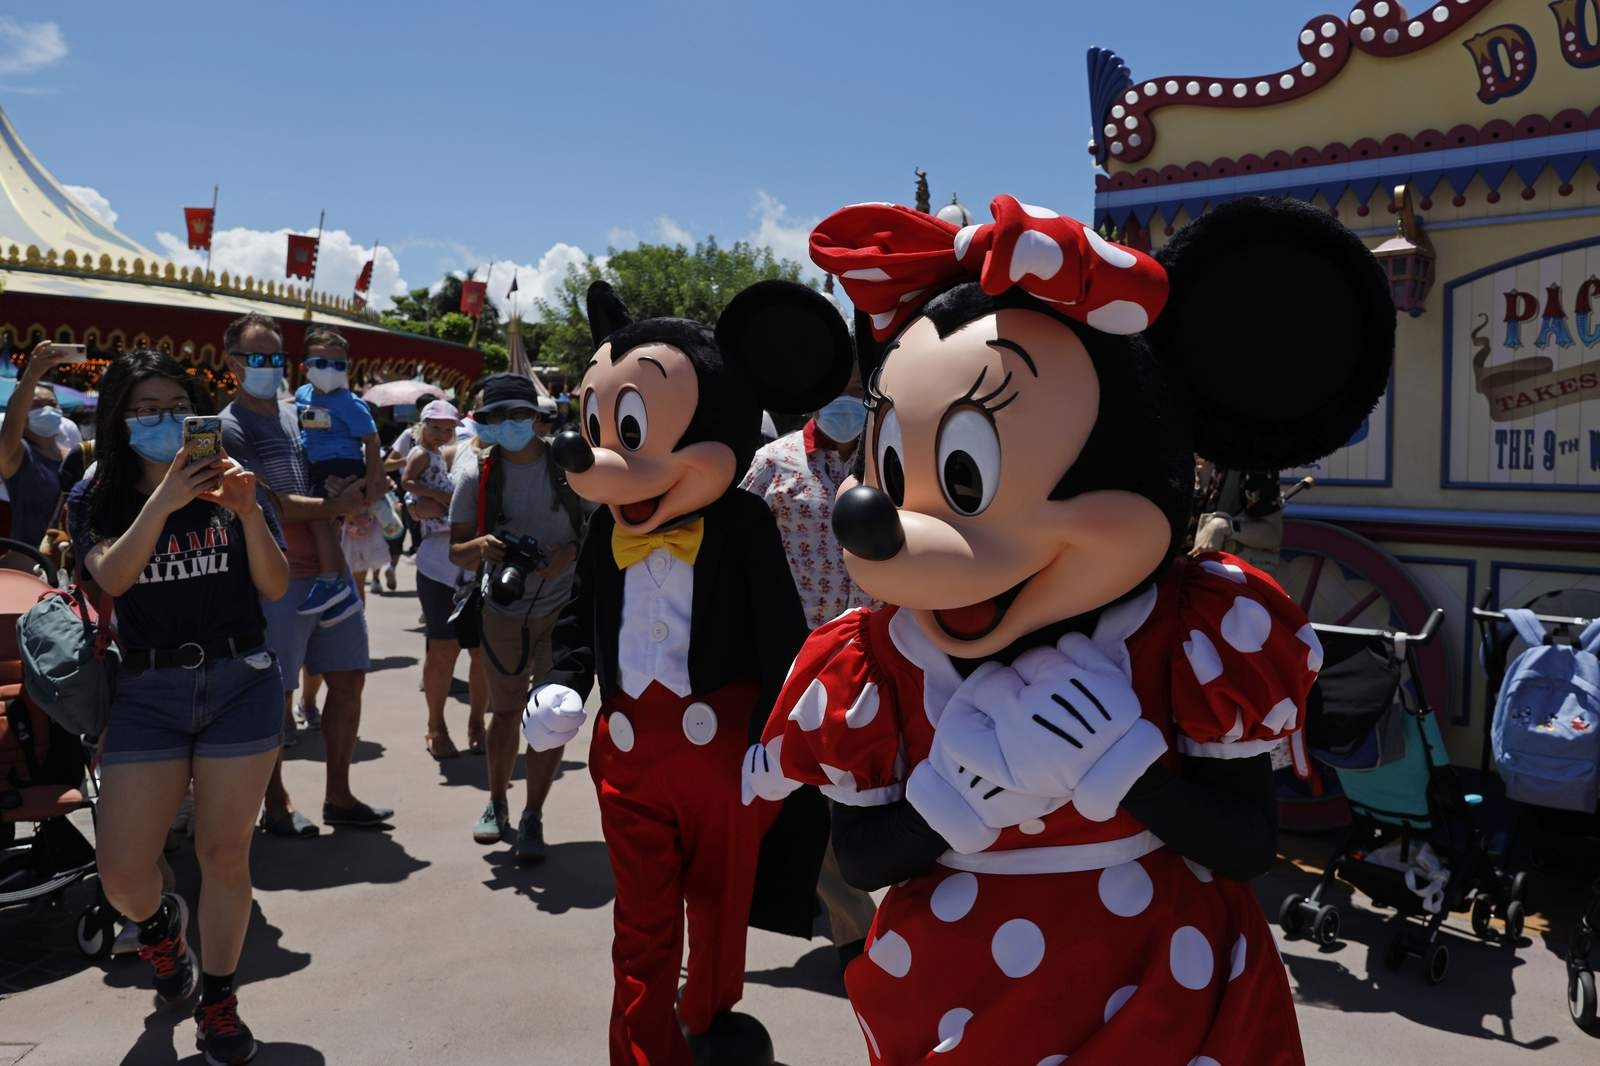 hong kong disneyland closing again after after new coronavirus outbreak